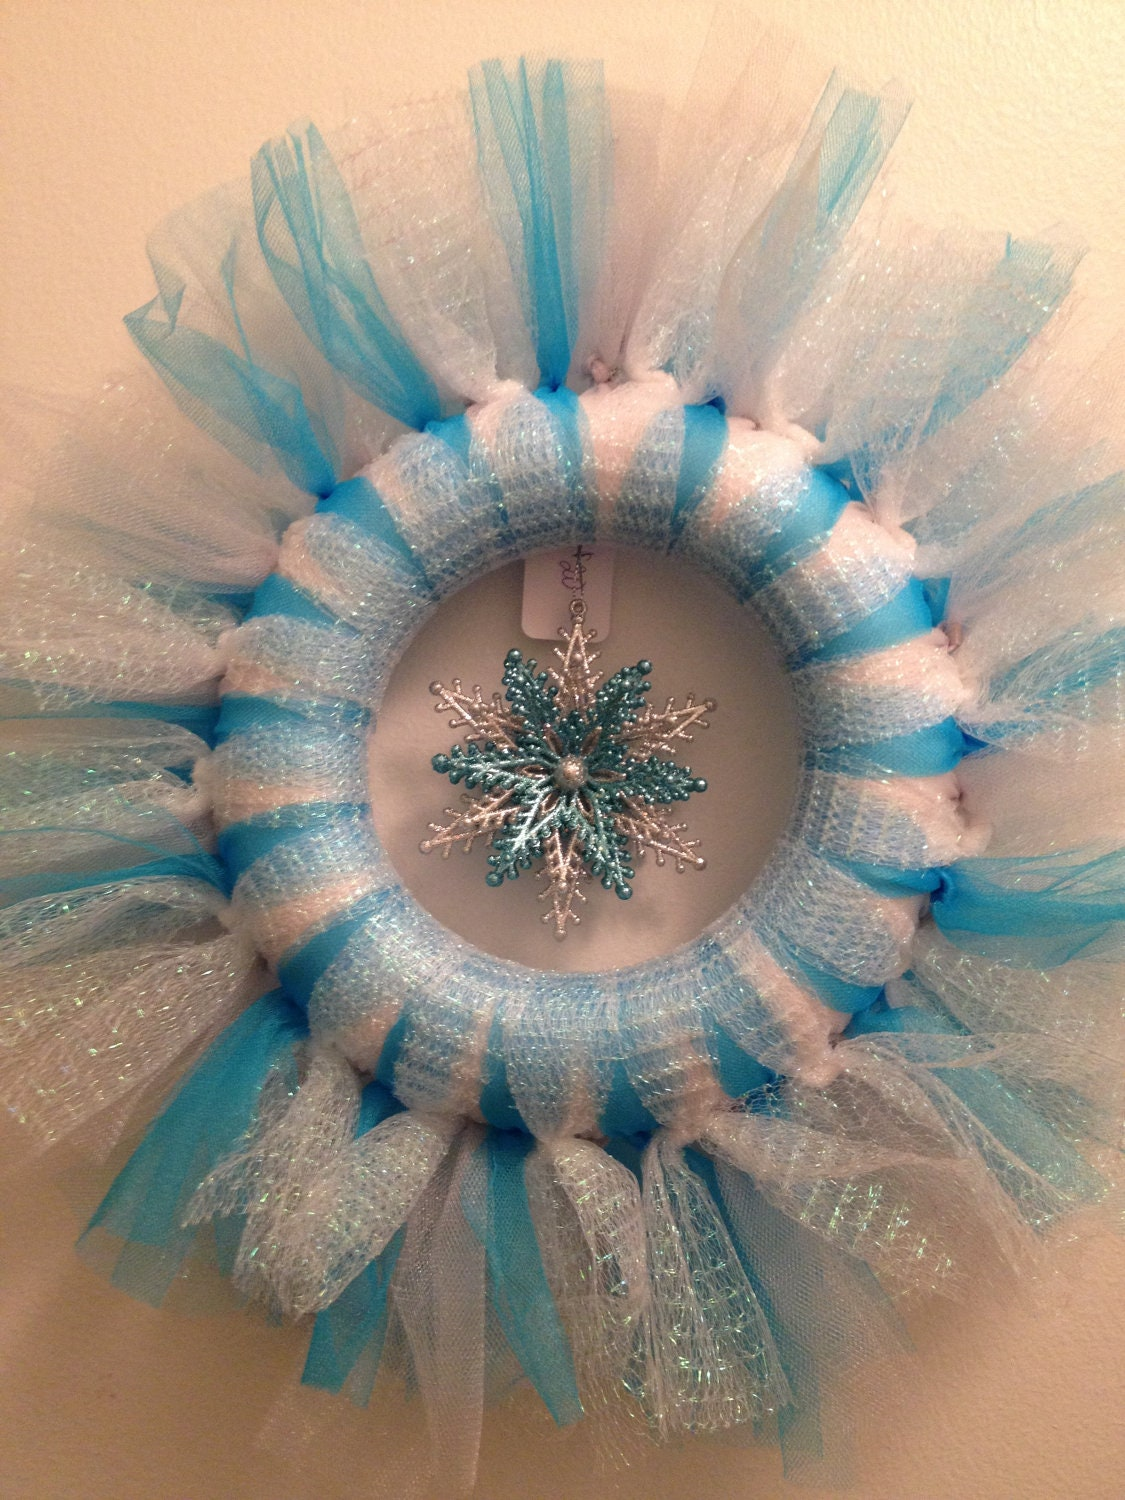 Turquoise and Silver with Iridescent Tulle Wreath with snowflake ornament